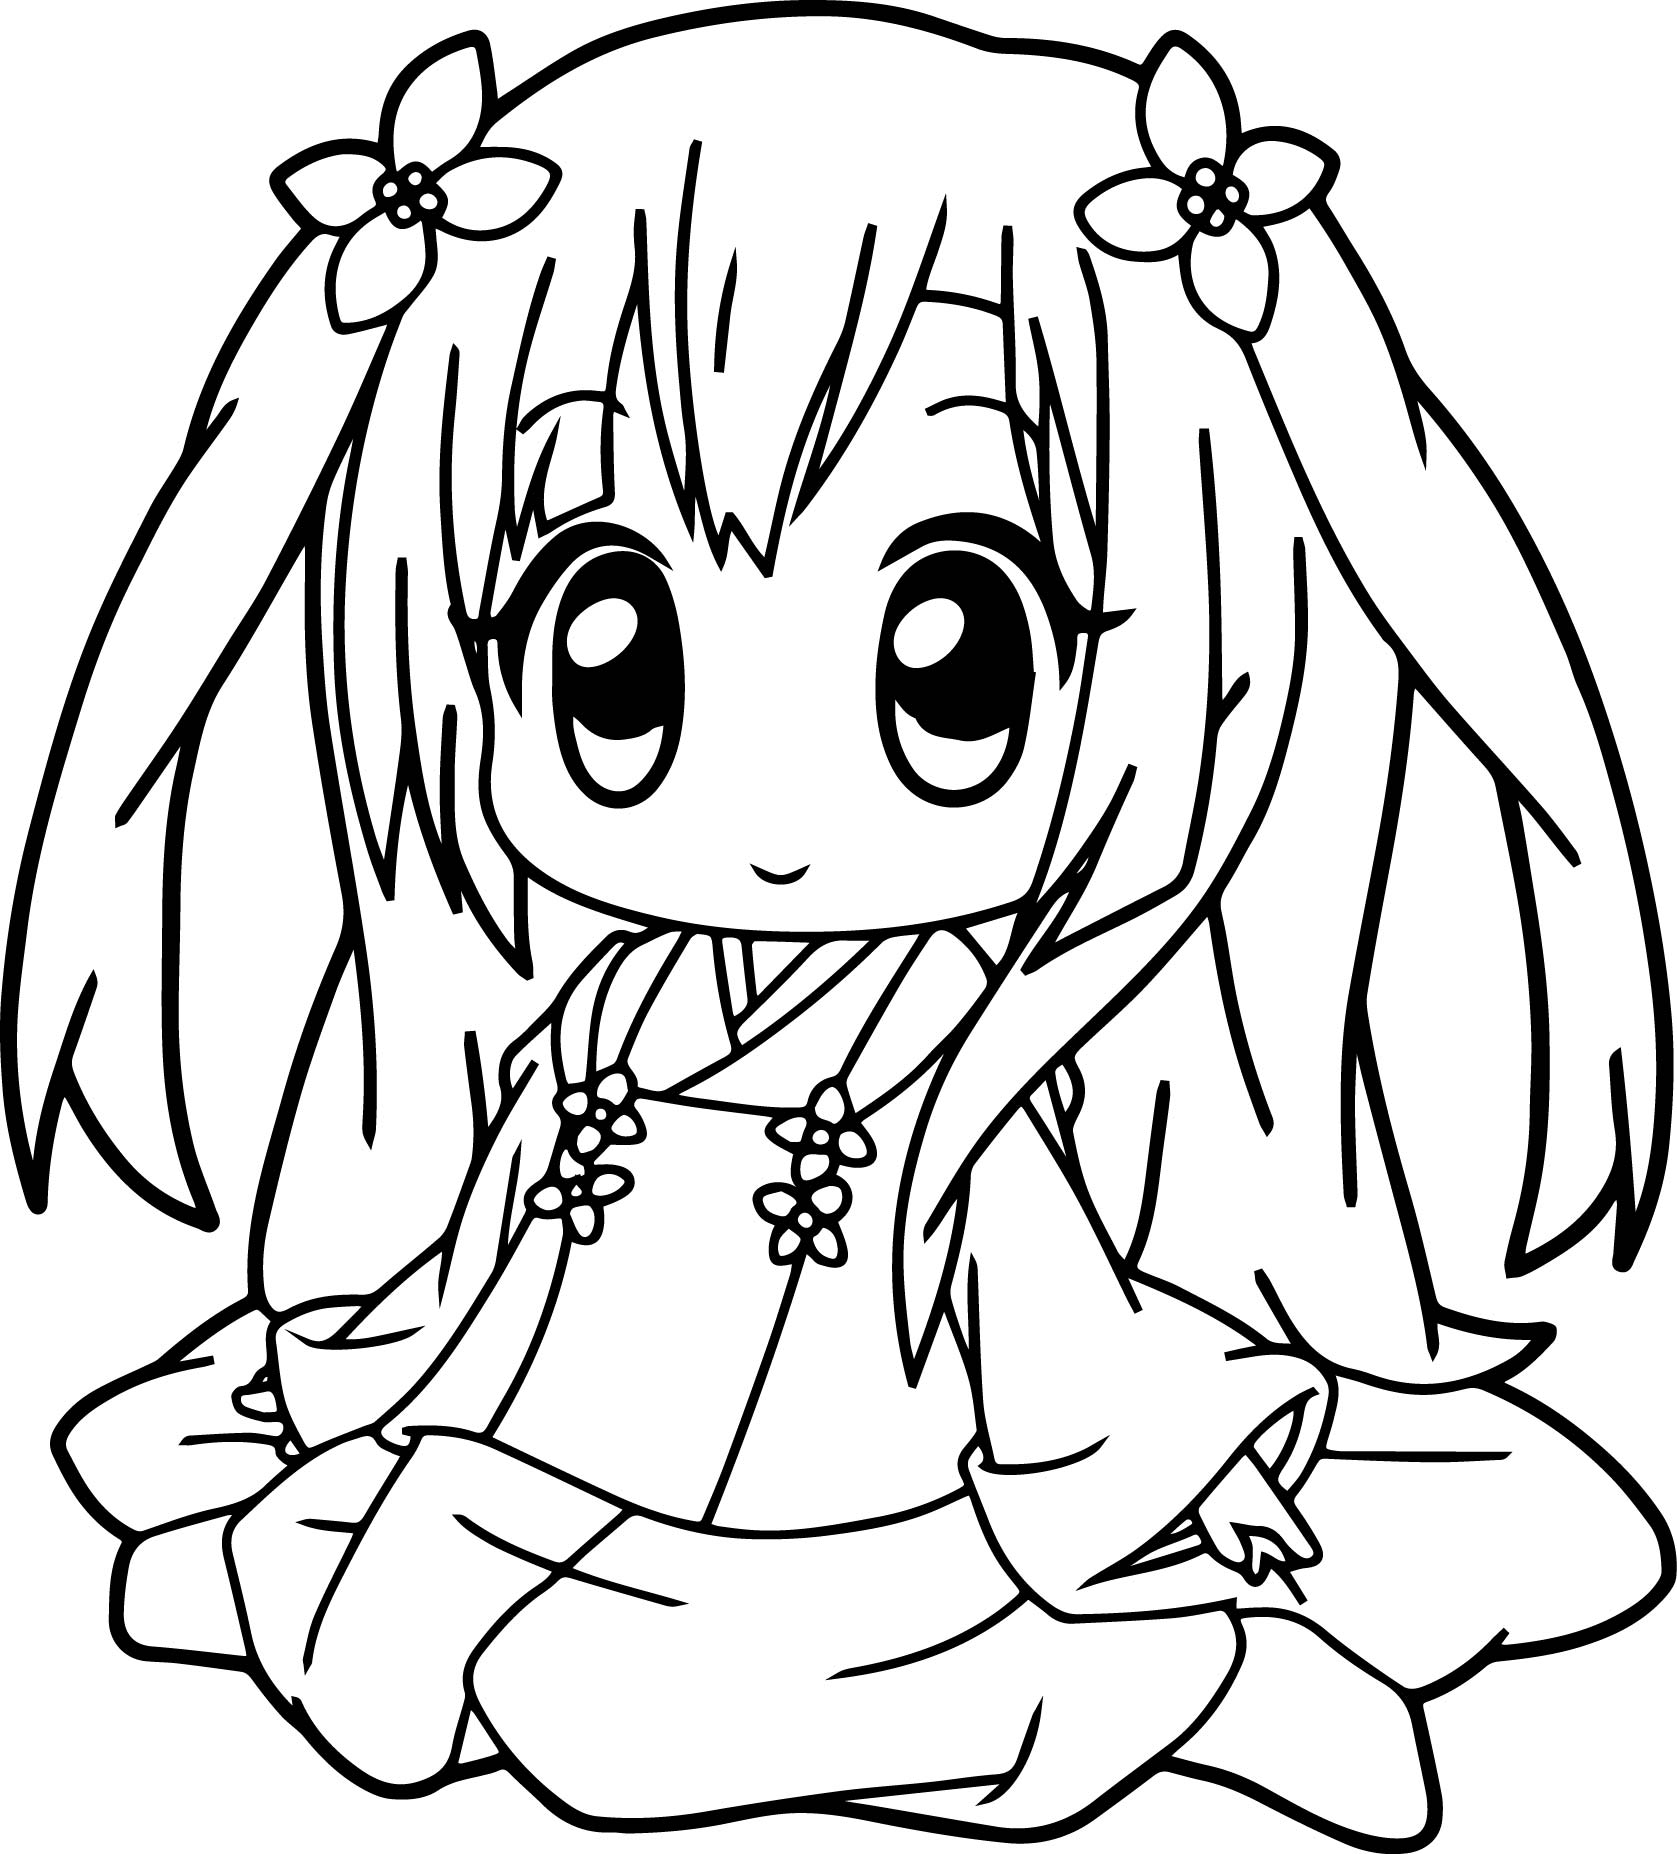 Cute Dog Anime Drawing at GetDrawings | Free download